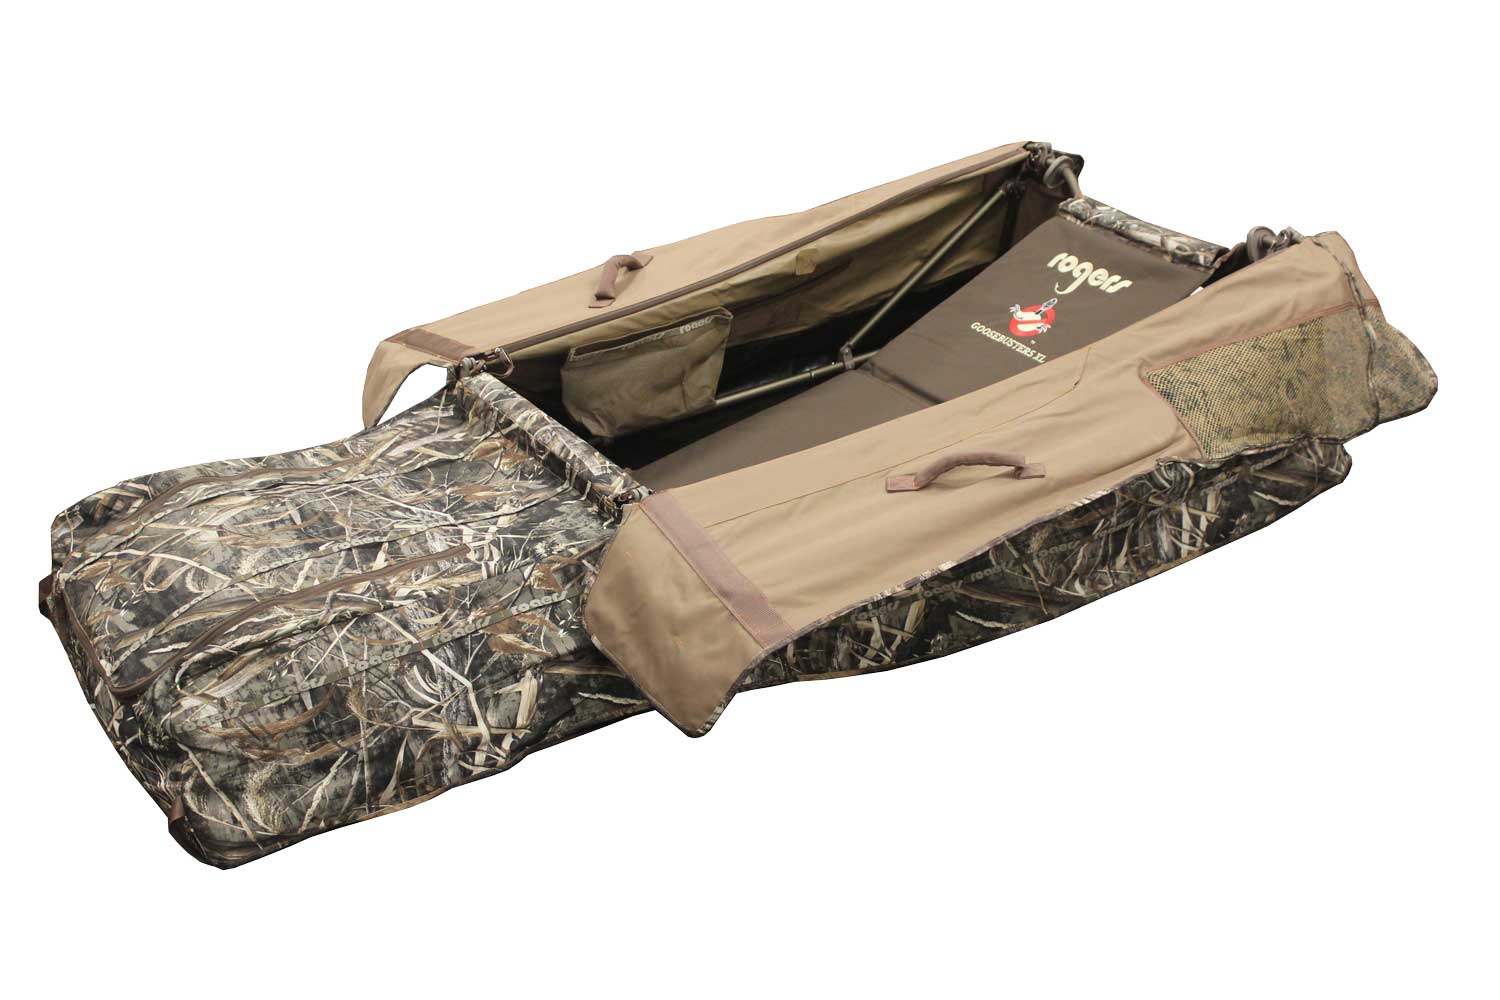 Rogers Goosebuster XL Layout Blind, Realtree Max 5